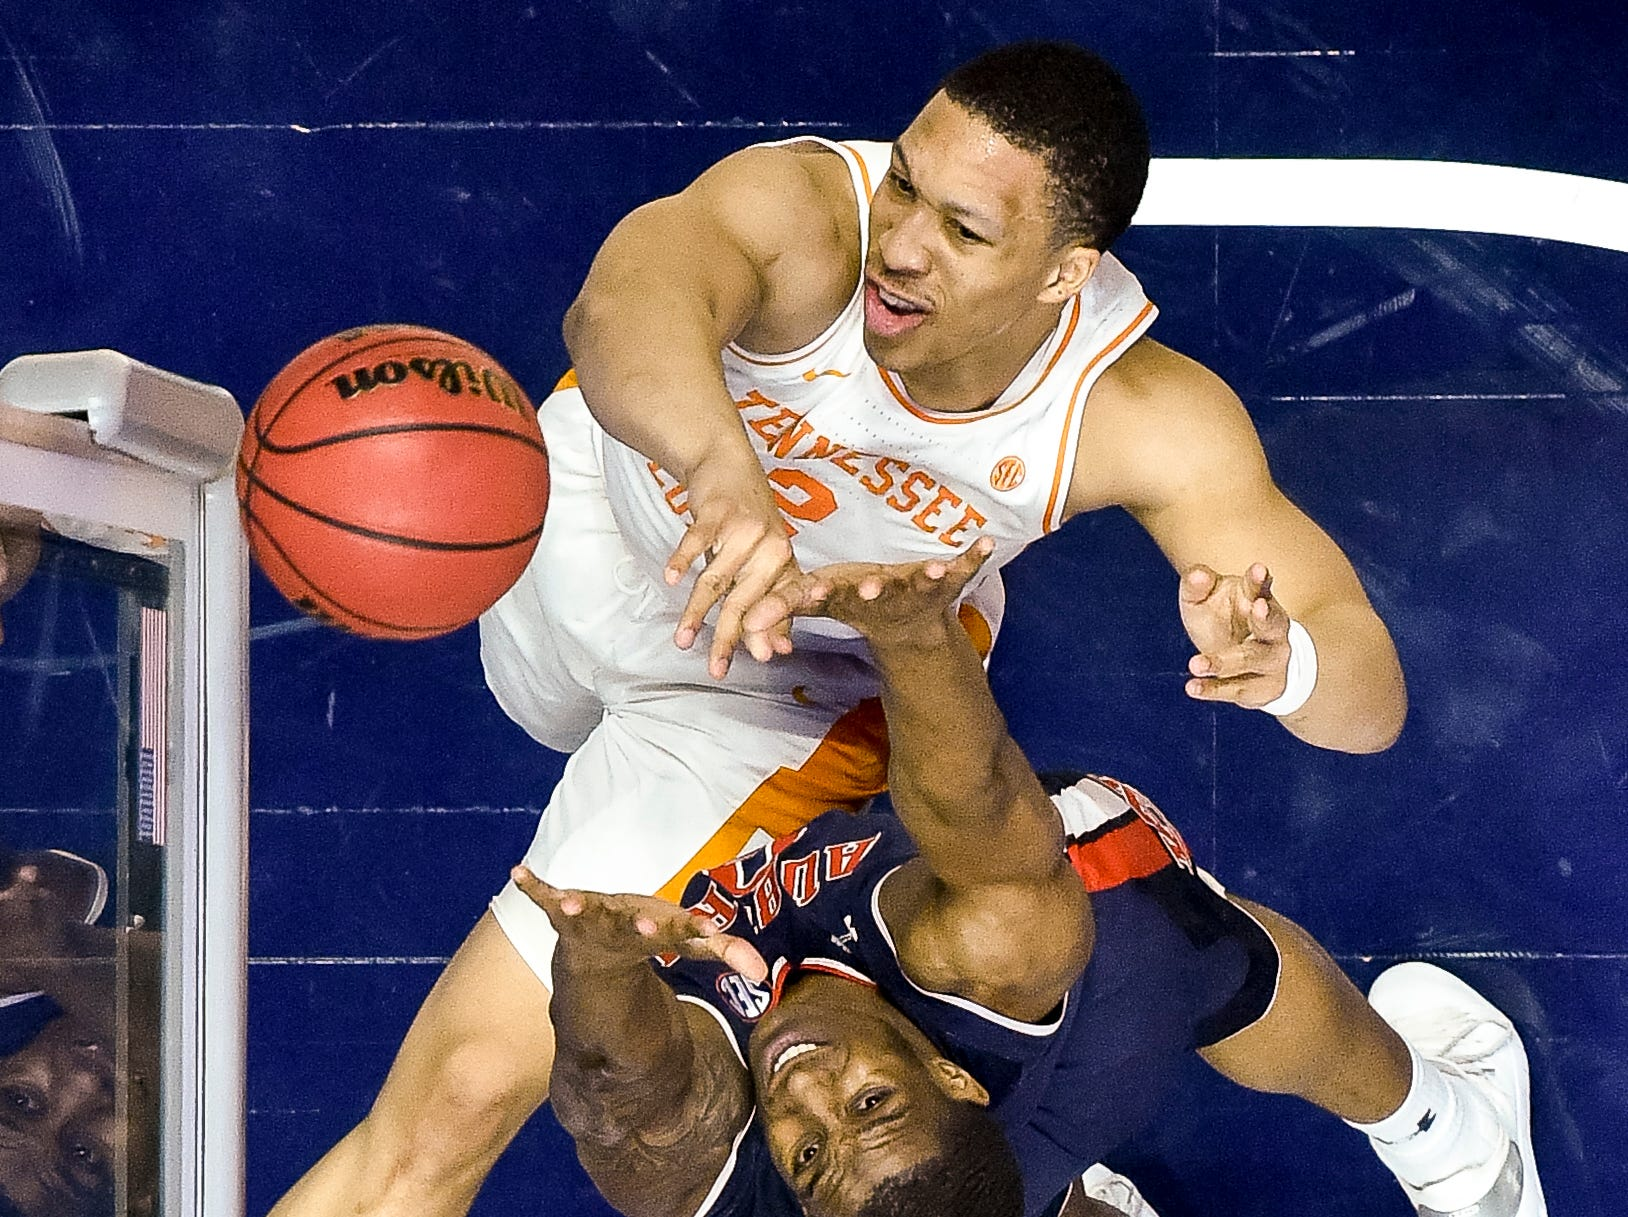 Tennessee forward Grant Williams (2) shoots over Auburn forward Horace Spencer (0) during the first half of the SEC Men's Basketball Tournament championship game at Bridgestone Arena in Nashville, Tenn., Sunday, March 17, 2019.